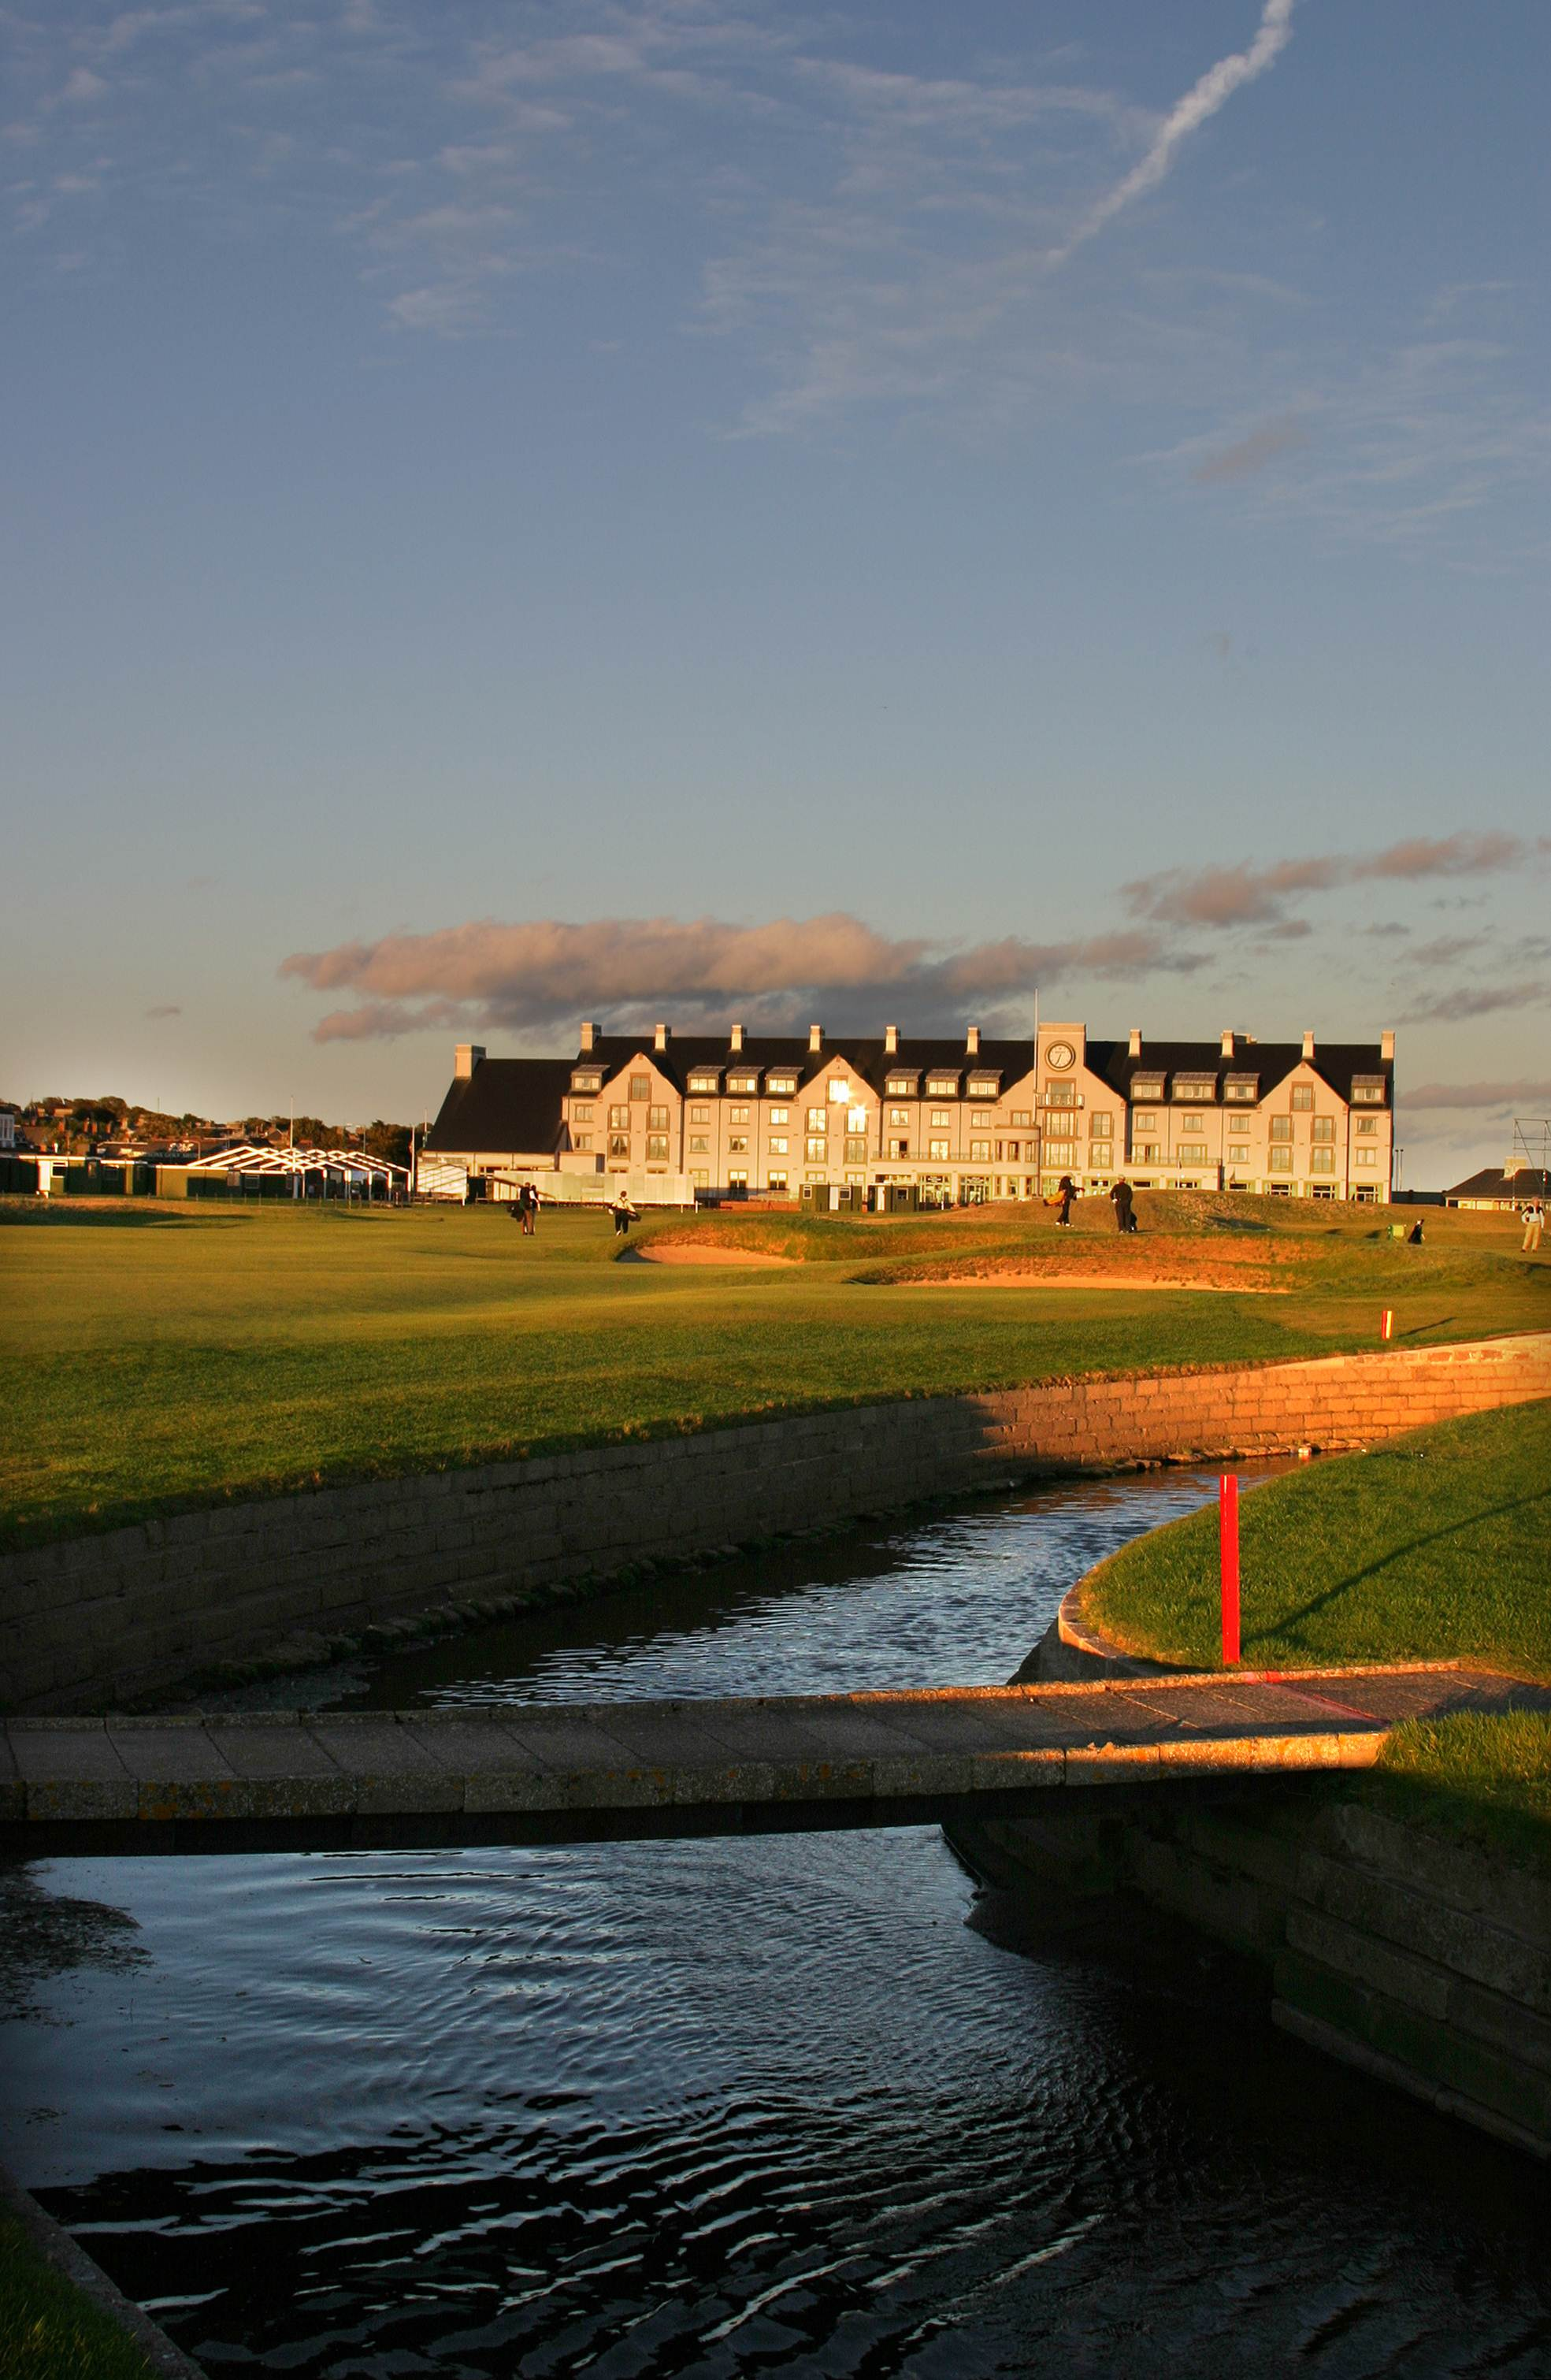 Iamge of the Carnoustie Golf Hotel